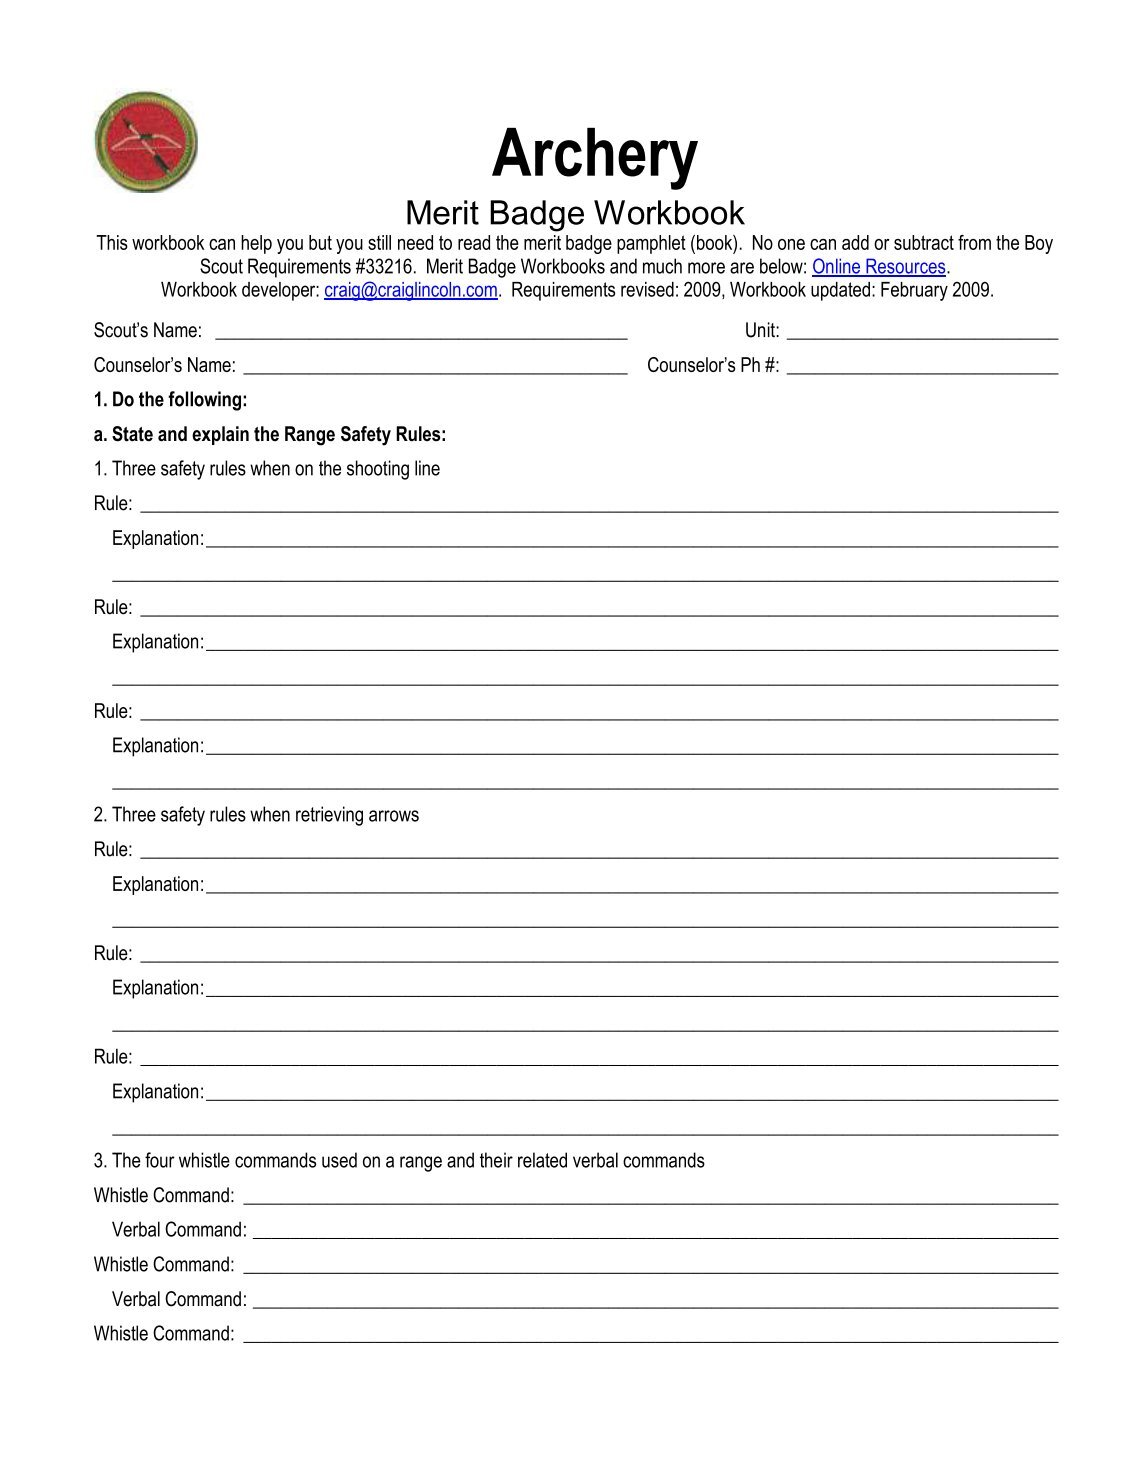 Uncategorized Golf Merit Badge Worksheet medicine merit badge worksheet termolak collection of archery sharebrowse